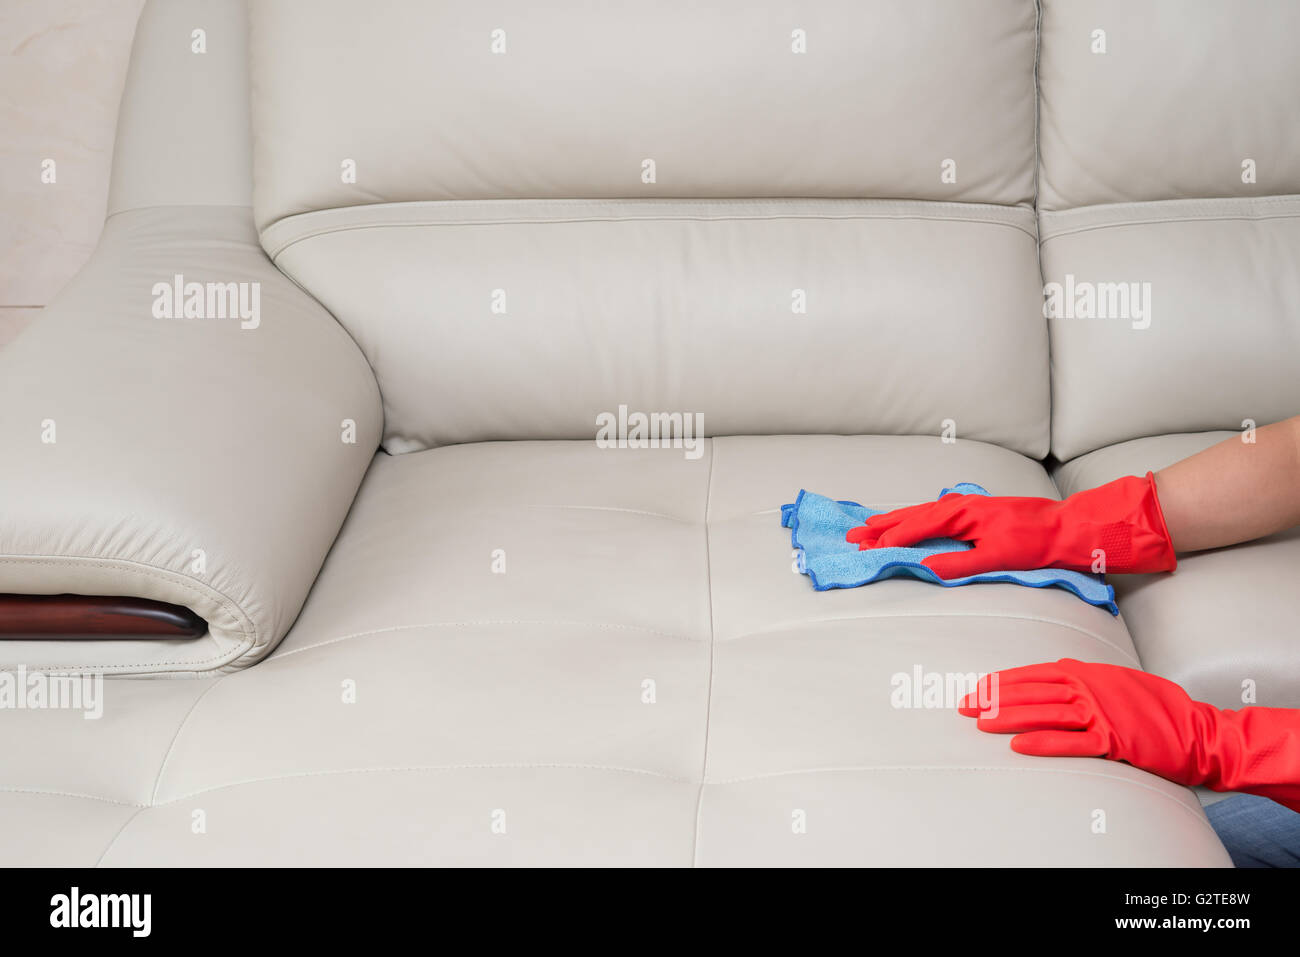 Cleaning Leather Sofa At Home Stock Photo 105029593 Alamy